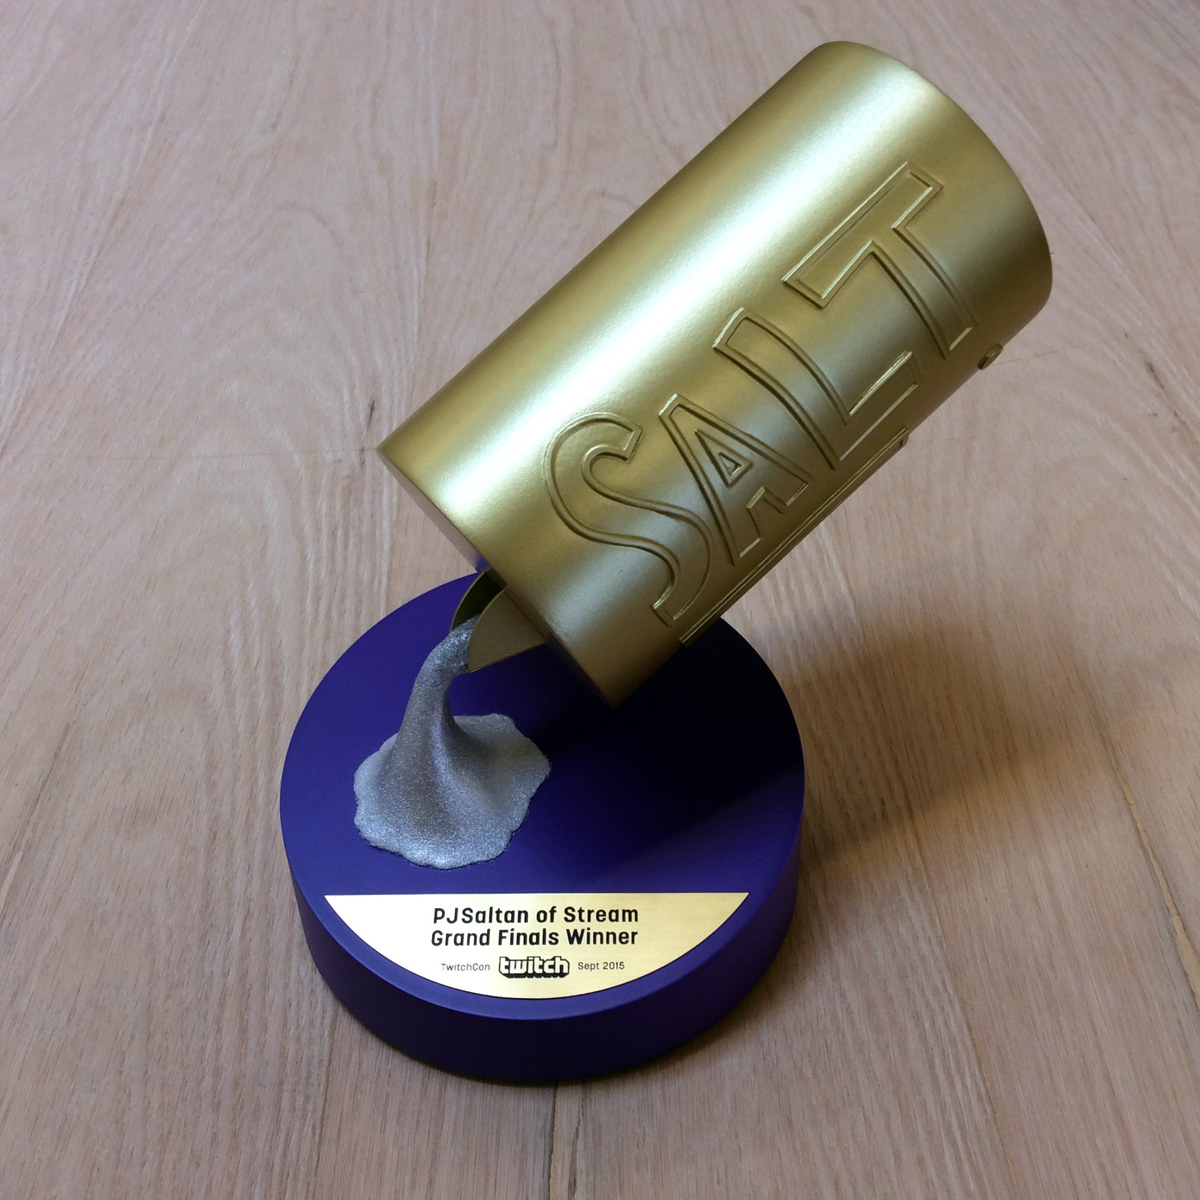 Salt Award for TwitchTV